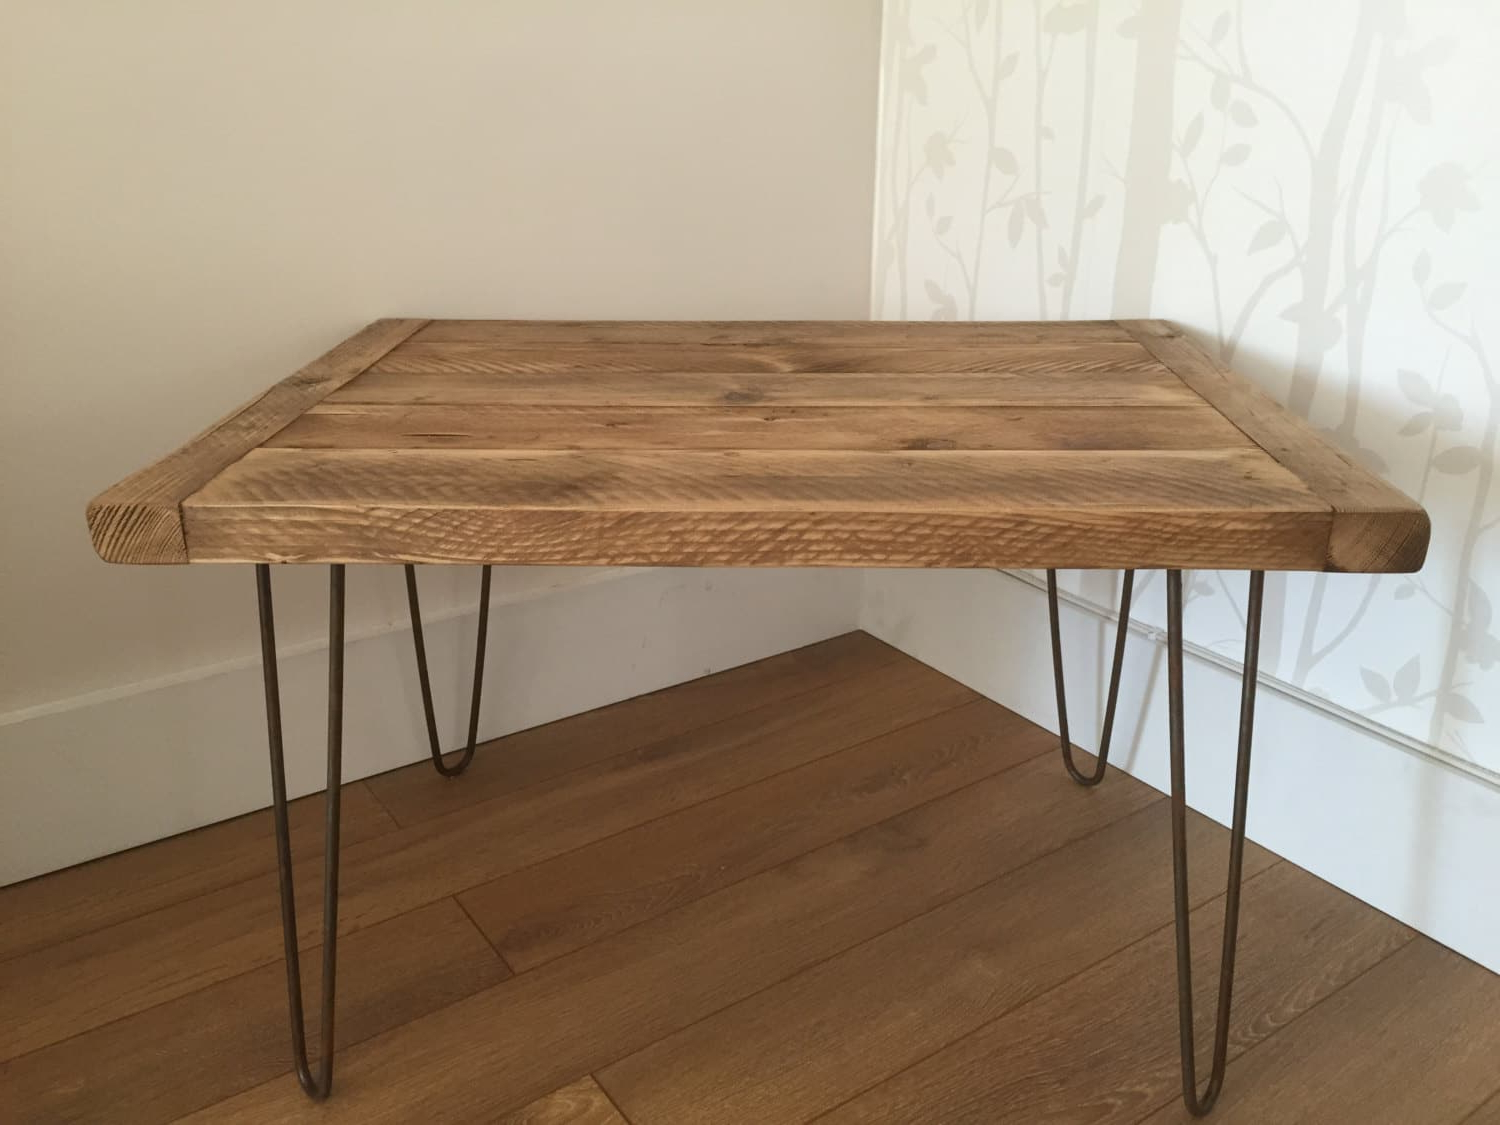 Most Current Reclaimed Pine & Iron Coffee Tables With Regard To Reclaimed Rustic Solid Pine Coffee Table With Metal Hairpin Legs (Gallery 17 of 20)